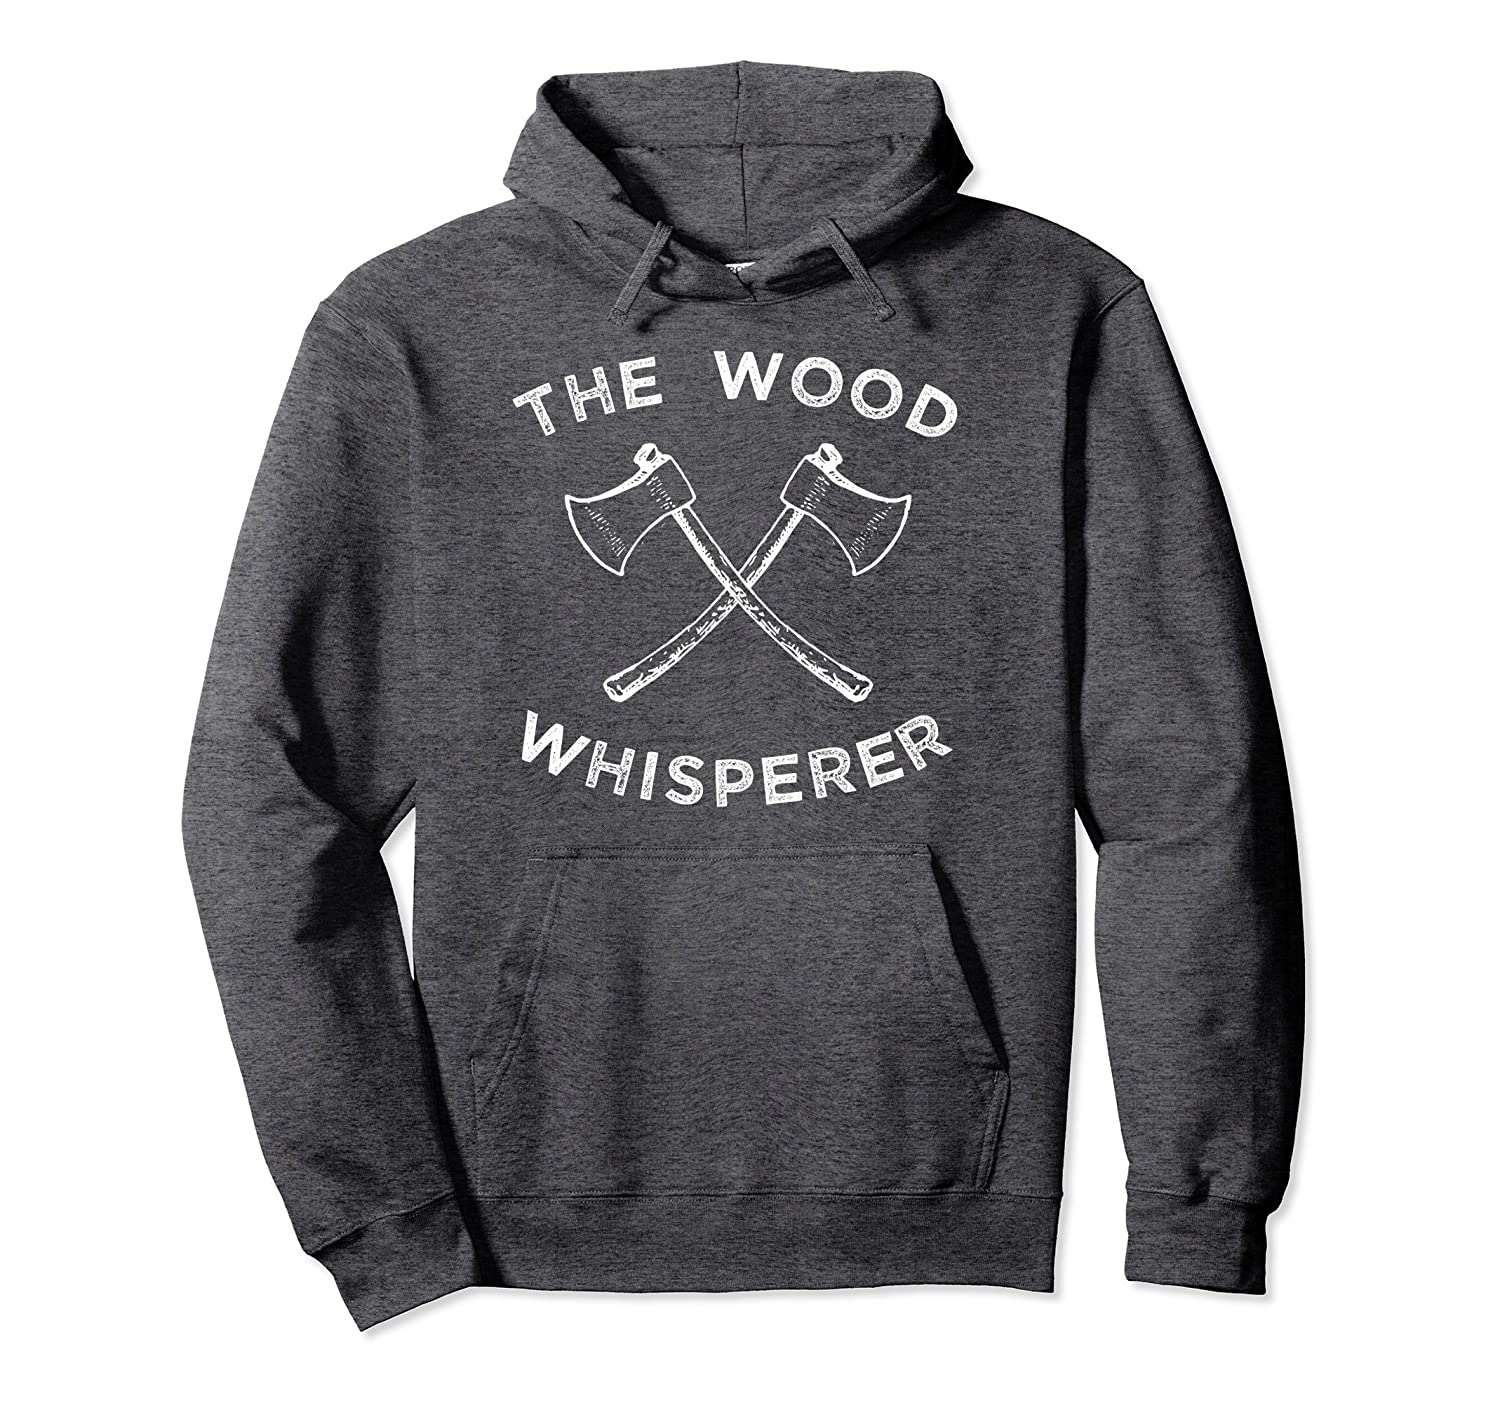 Funny Axe Hoodie, The Wood Whisperer Arborist Gift-Colonhue